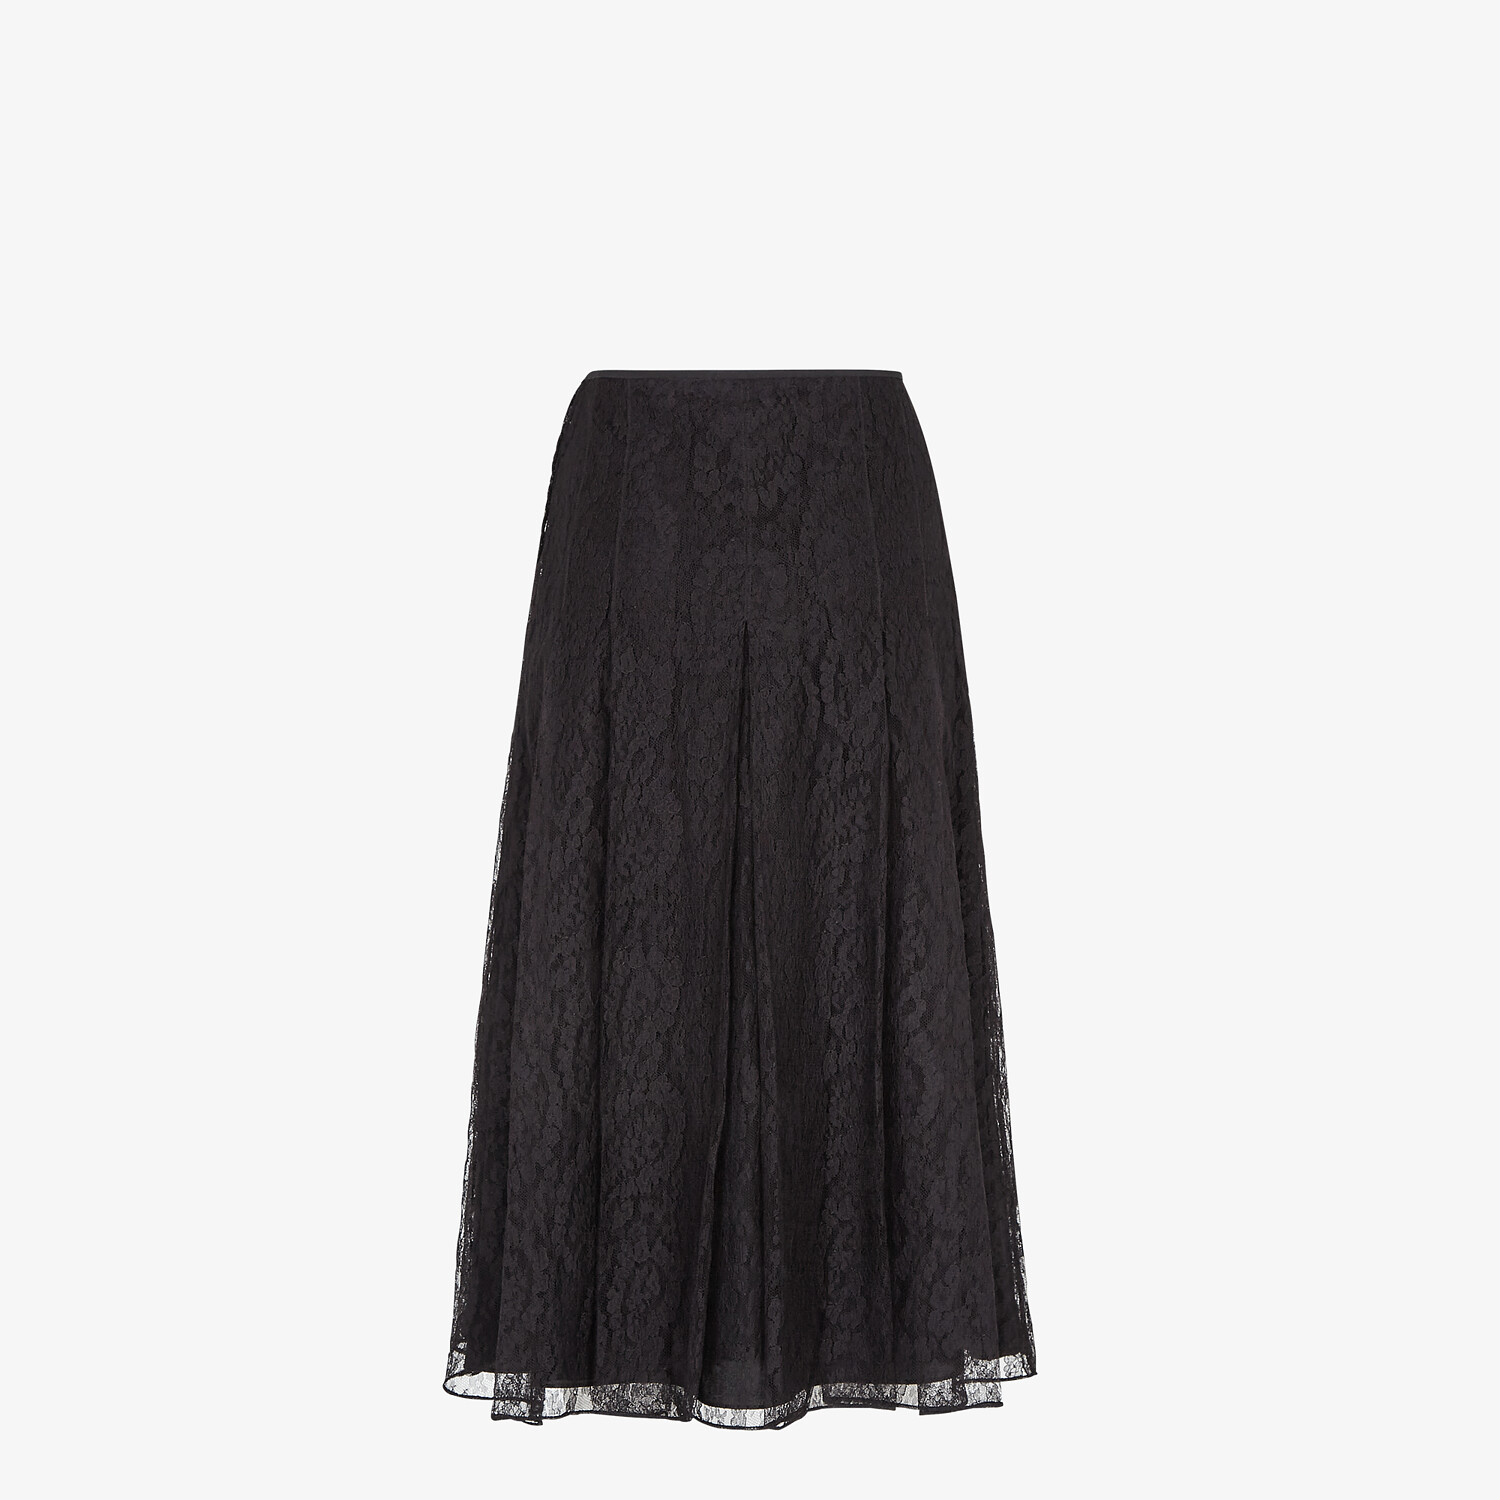 FENDI SKIRT - Black lace skirt - view 2 detail